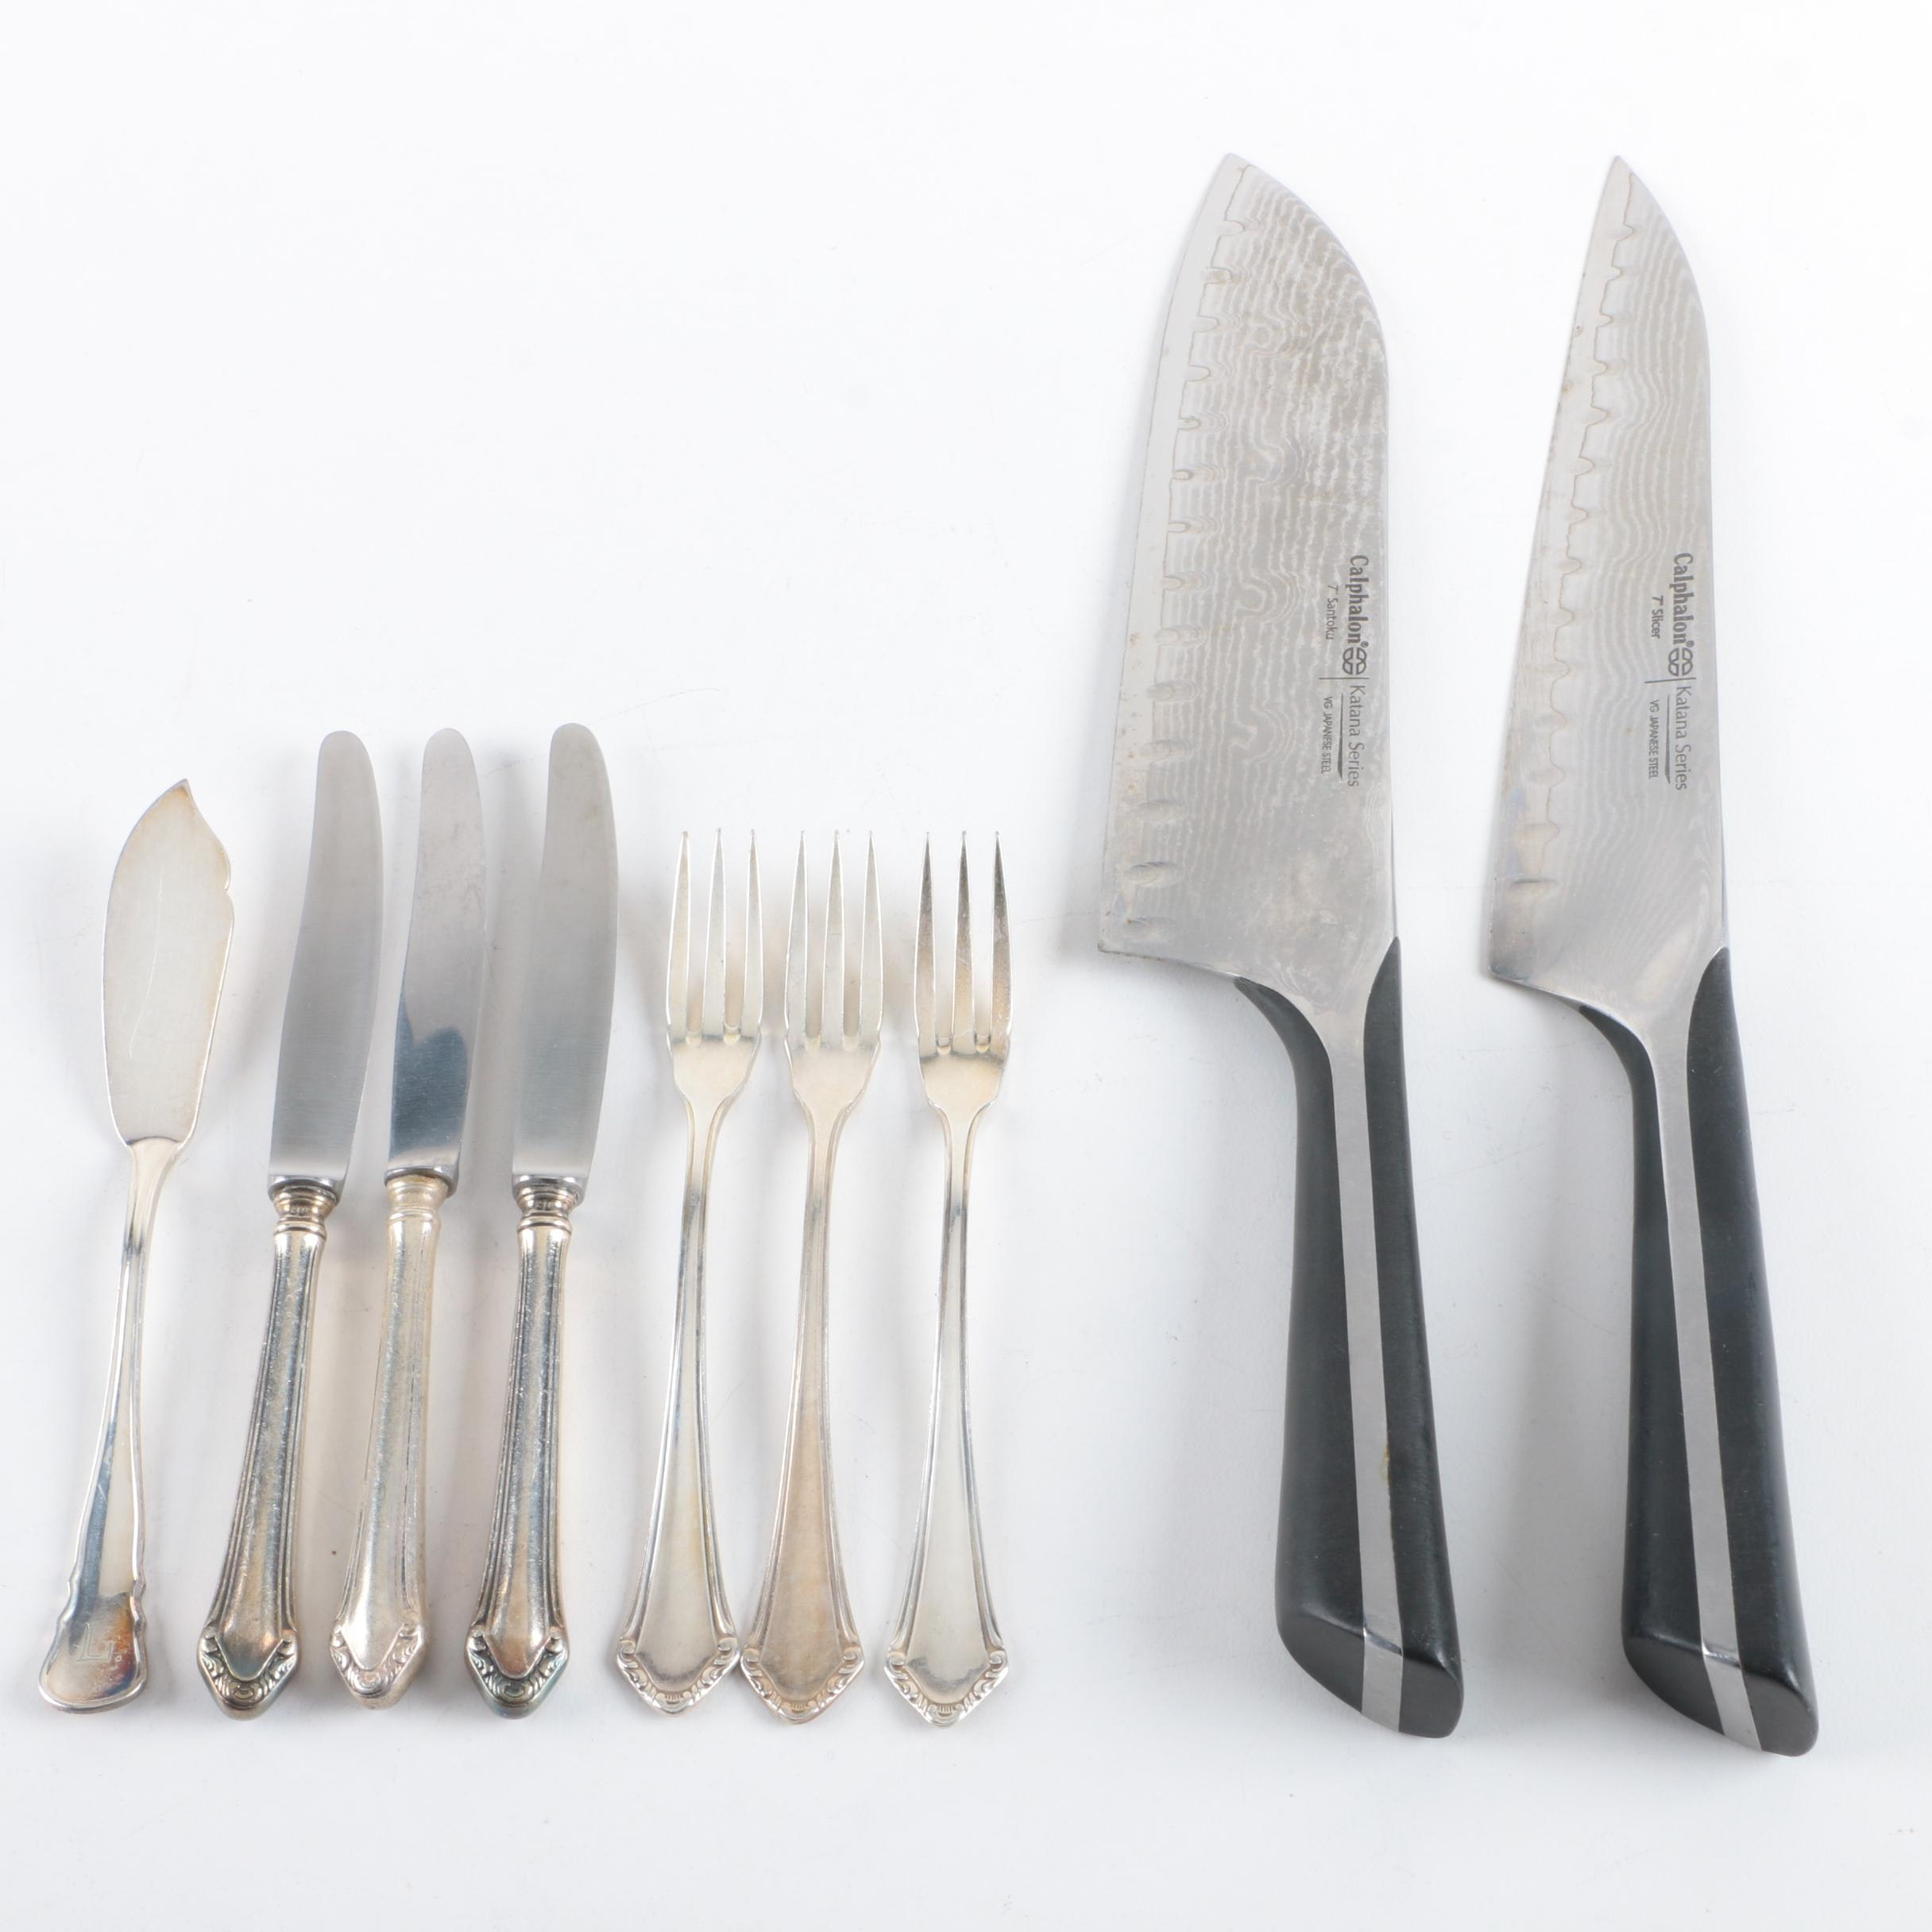 Calphalon Stainless Steel Cutlery with German Silver Plate Flatware